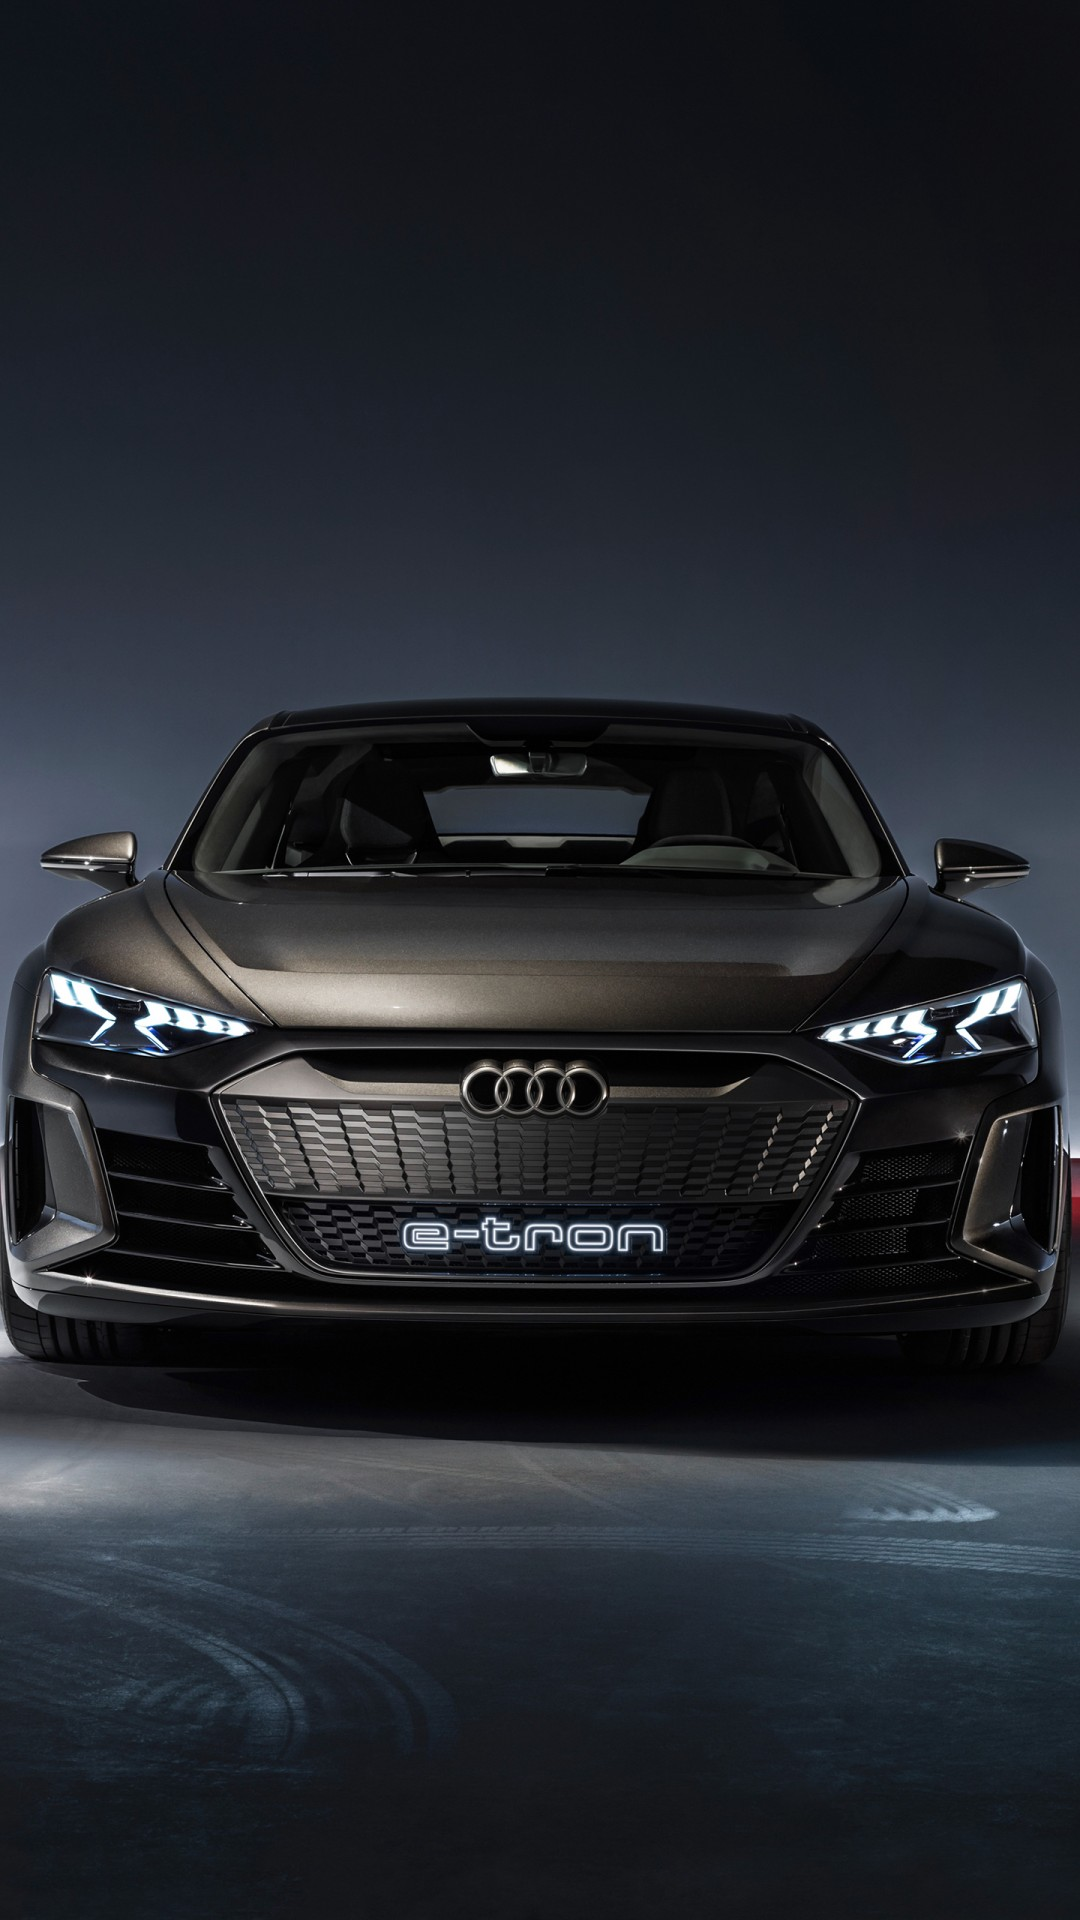 Girl Wallpaper Hd 2018 Audi E Tron Gt Concept 2019 4k Wallpapers Hd Wallpapers